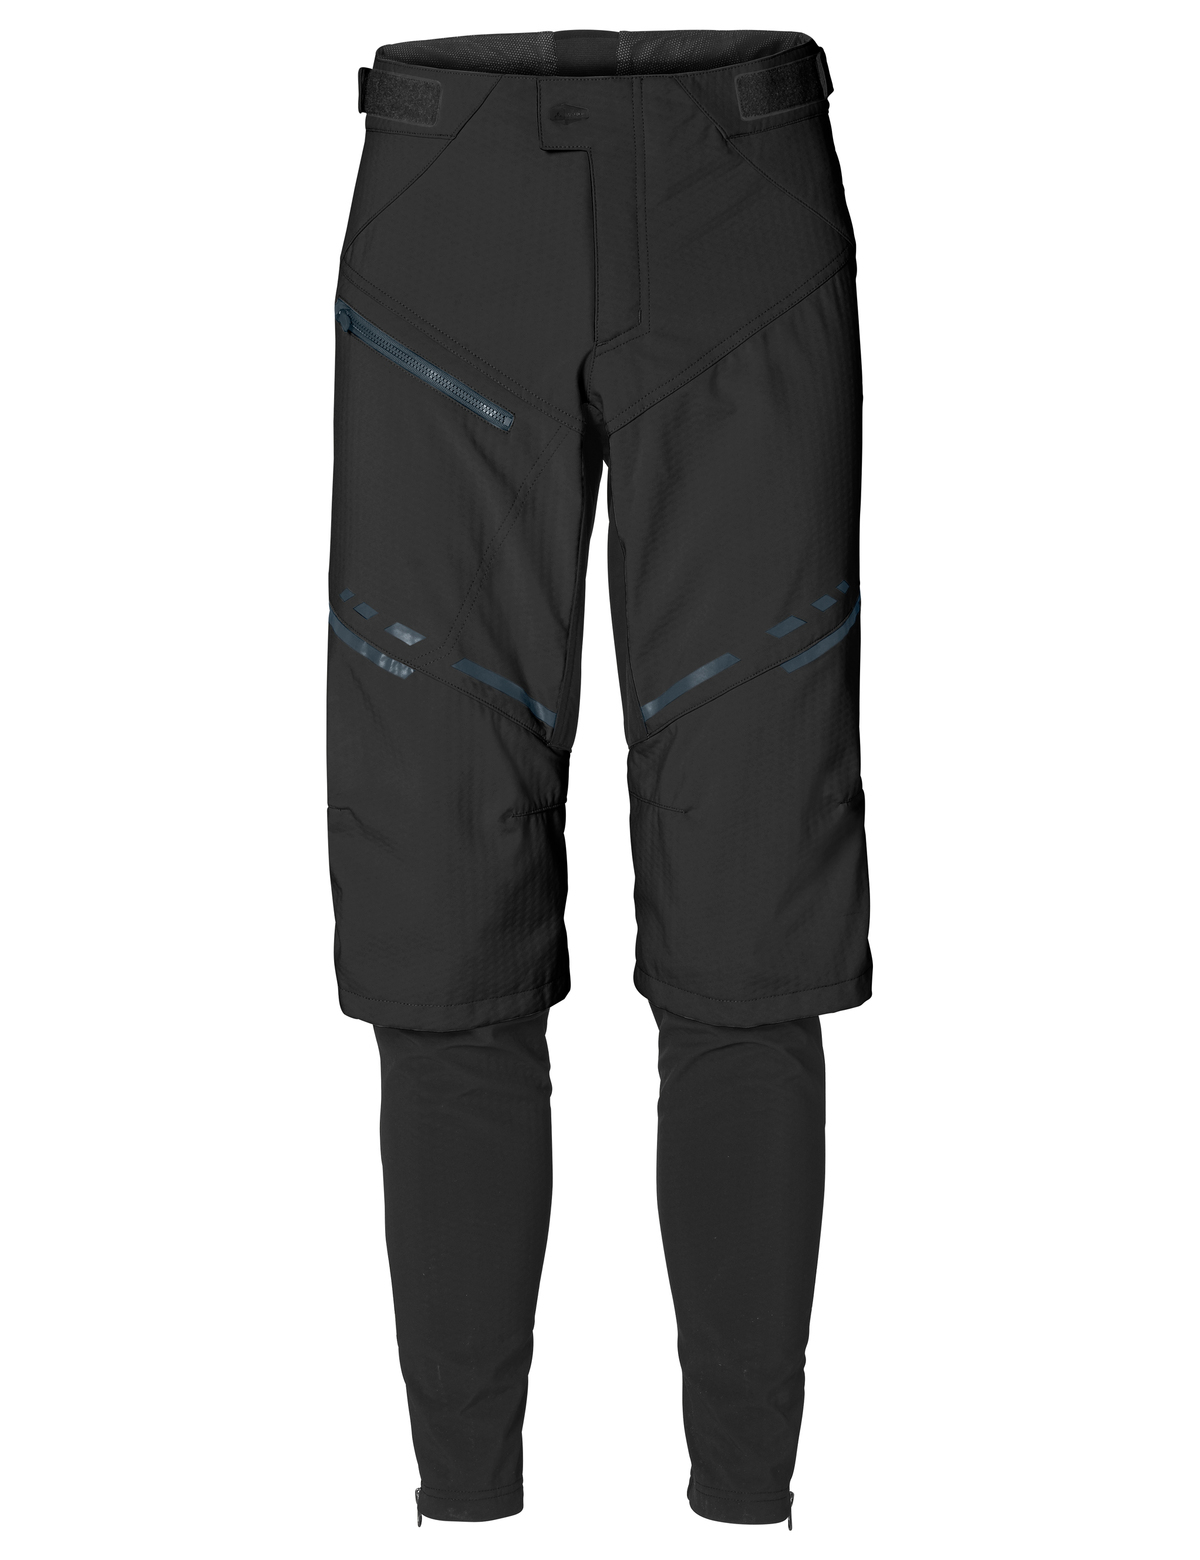 VAUDE Men´s Virt Softshell Pants II black Größe XL - Total Normal Bikes - Onlineshop und E-Bike Fahrradgeschäft in St.Ingbert im Saarland